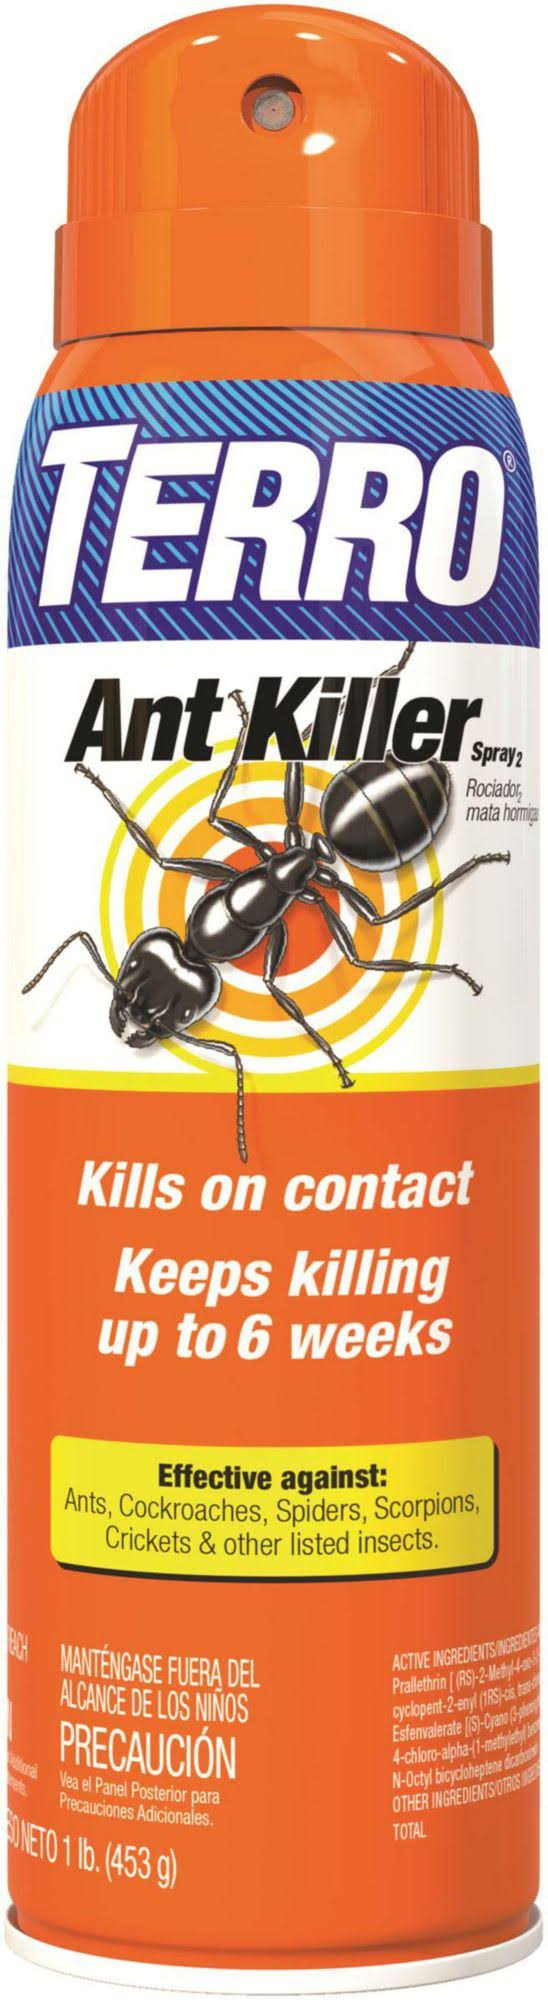 Terro Ant Killer Aerosol Spray - 16oz